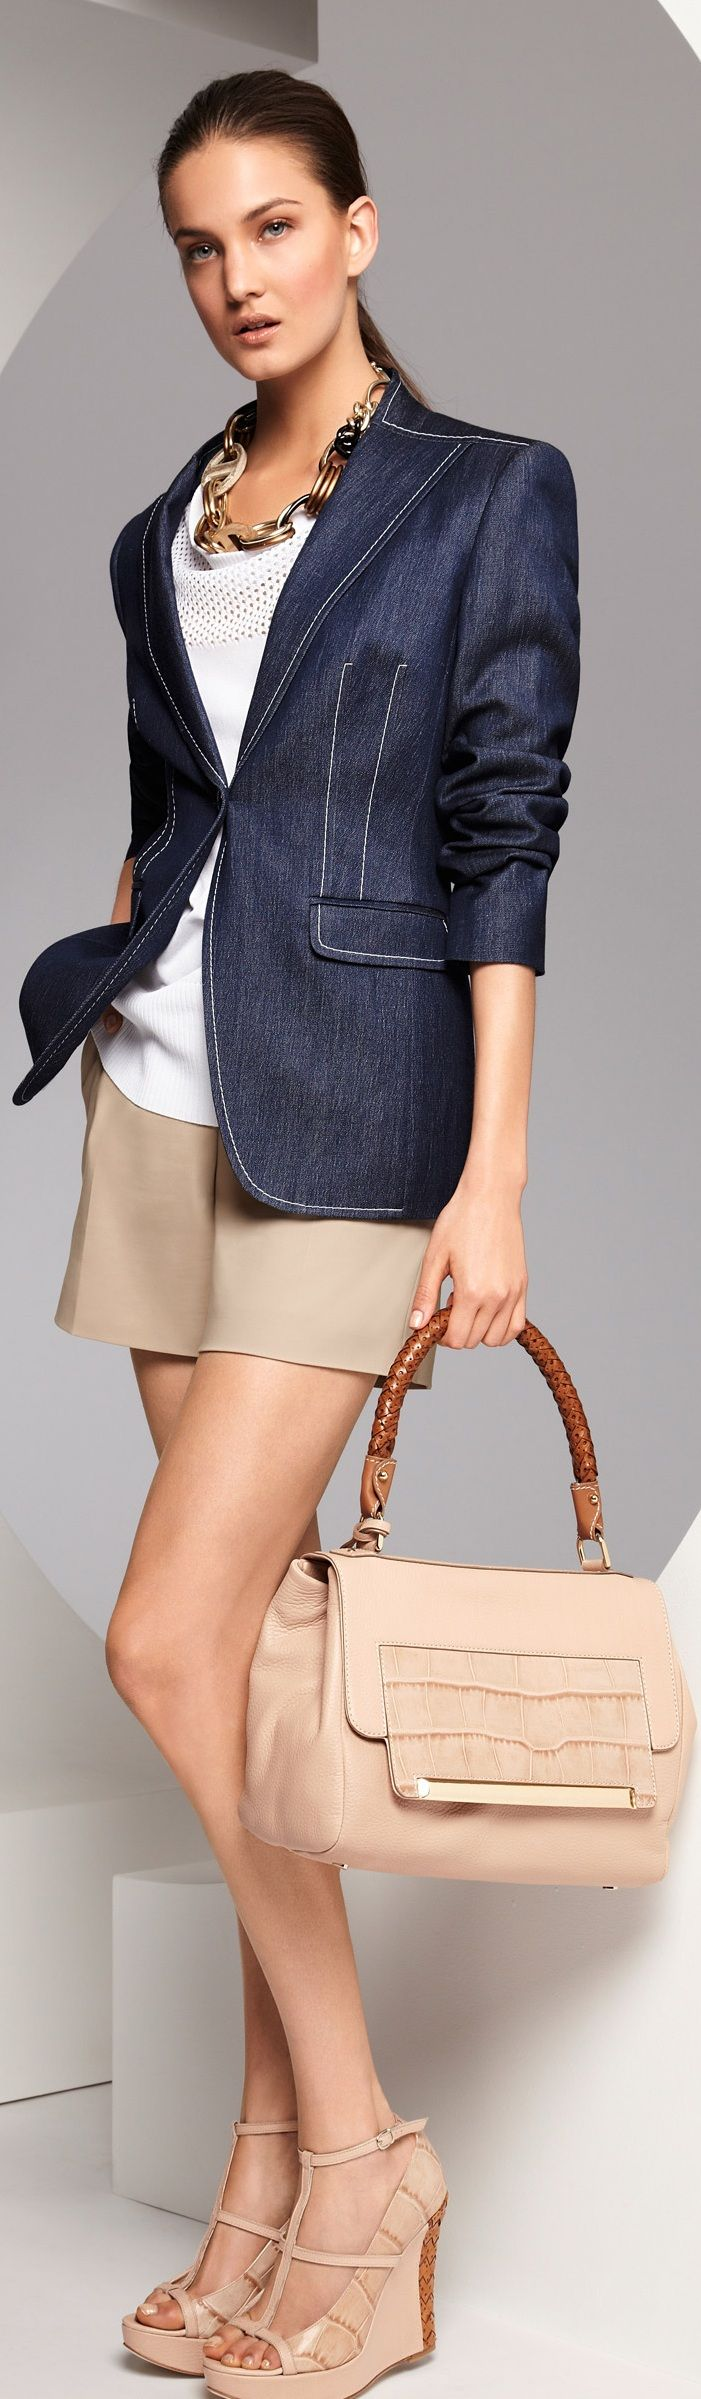 Escada ~ Summer Navy Denim Blazer over White Top w Tan Cotton Shorts, Tan Leather Handbag + Sandals